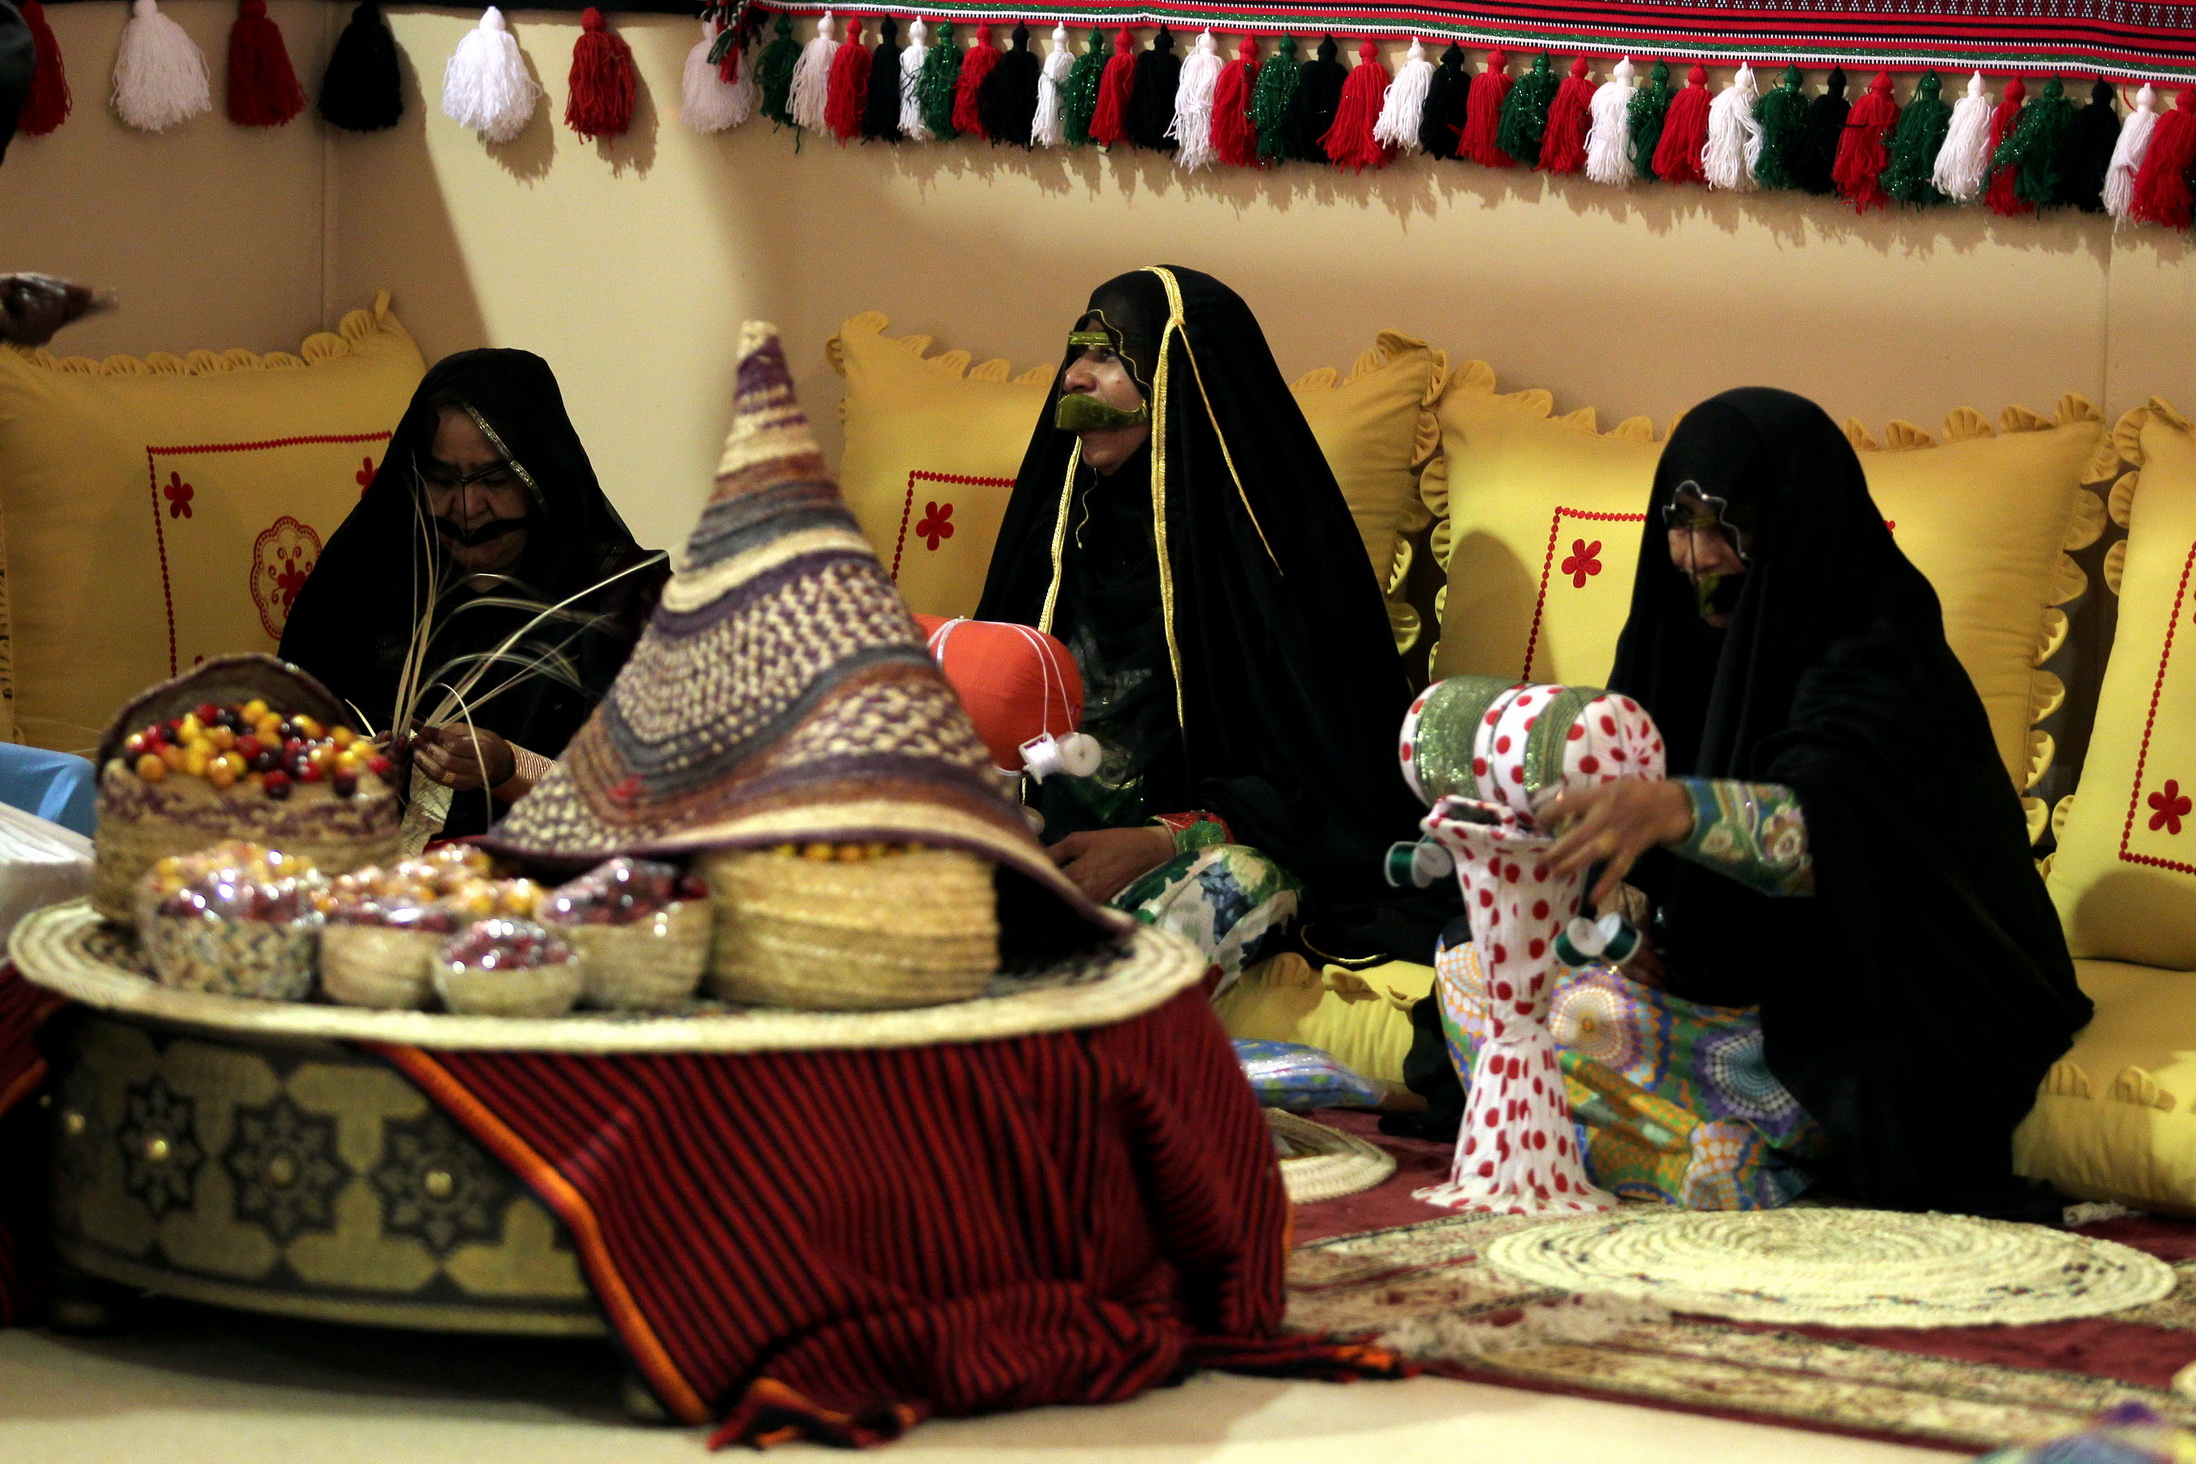 Bedouin solidarity and stories from the past woven through the 150 booths at the liwa dates festival's traditional market